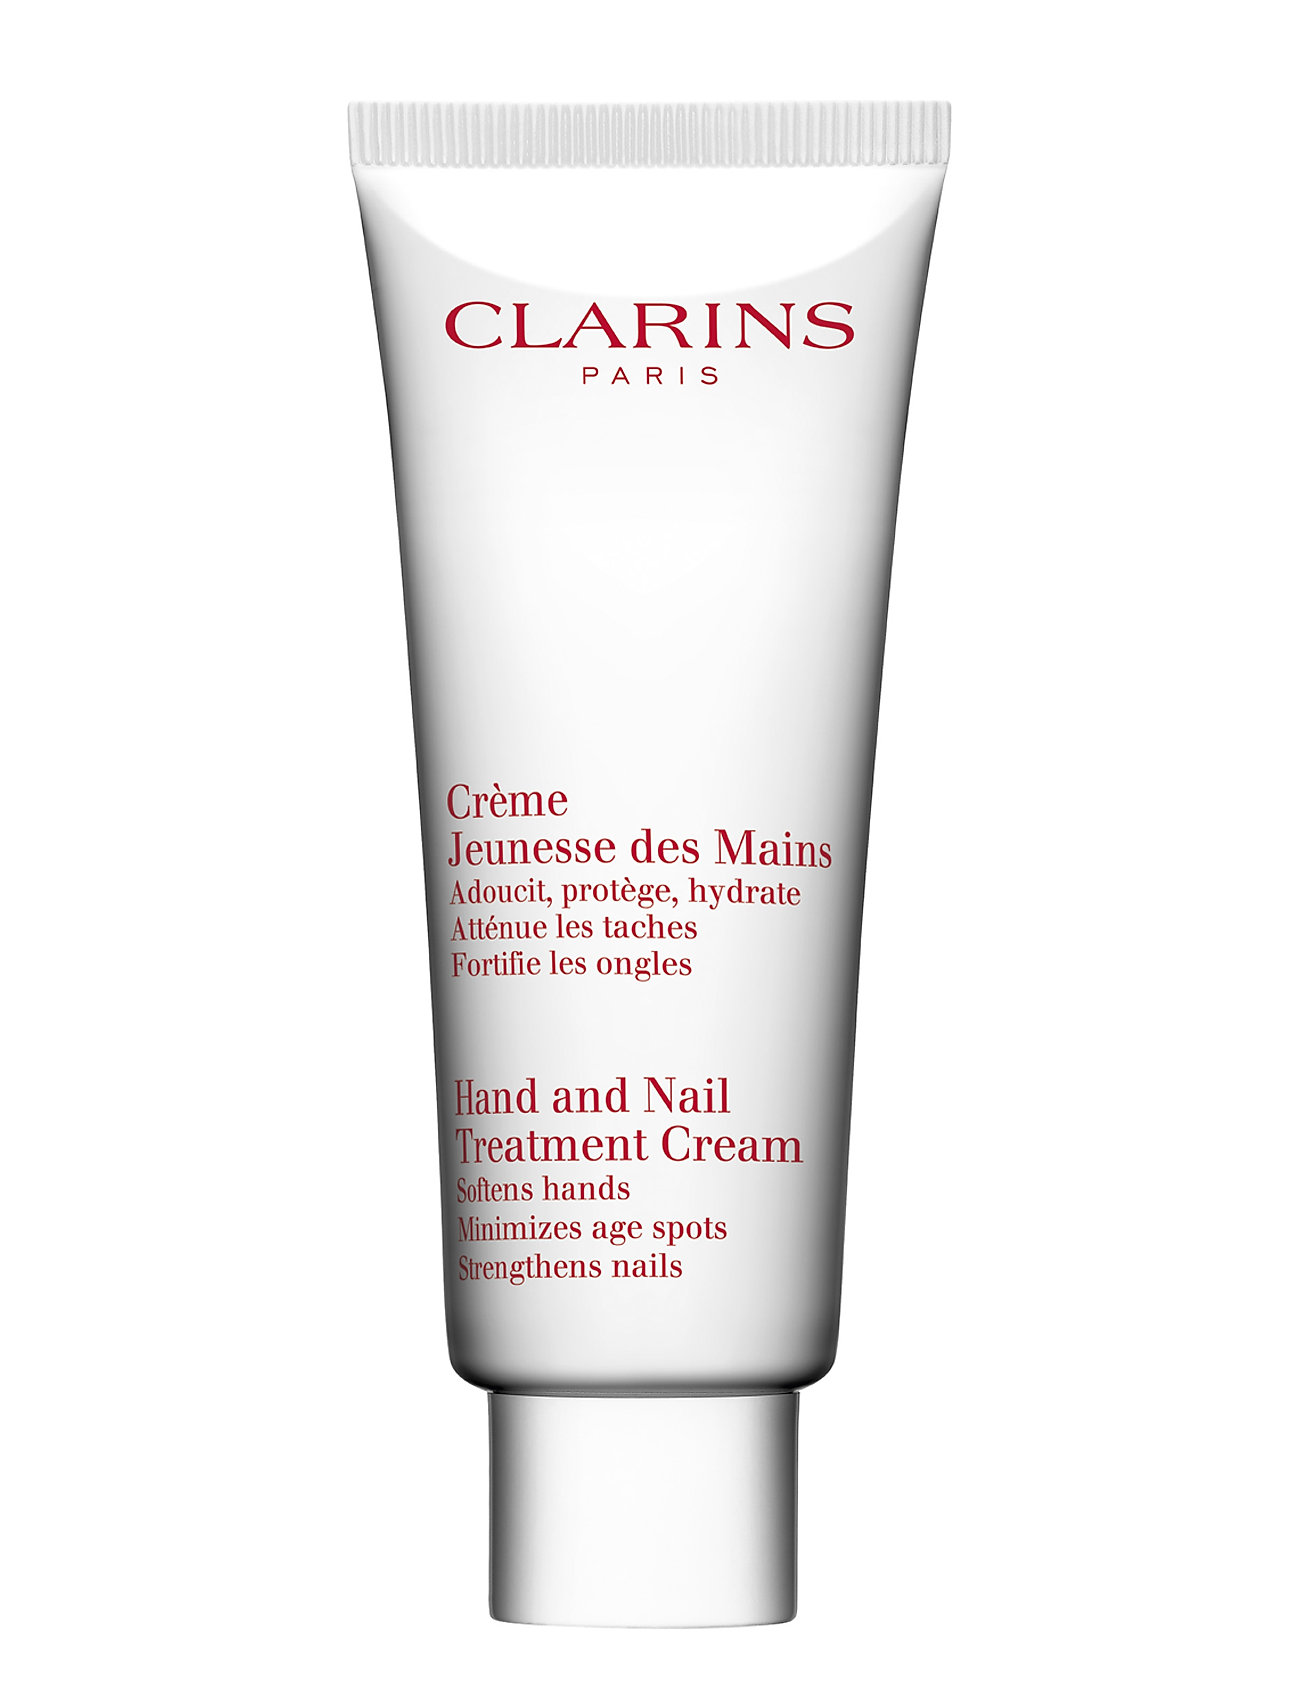 Image of Daily Hand And Nail Treatment Cream Beauty WOMEN Skin Care Body Hand Cream & Foot Cream Nude Clarins (3363493229)